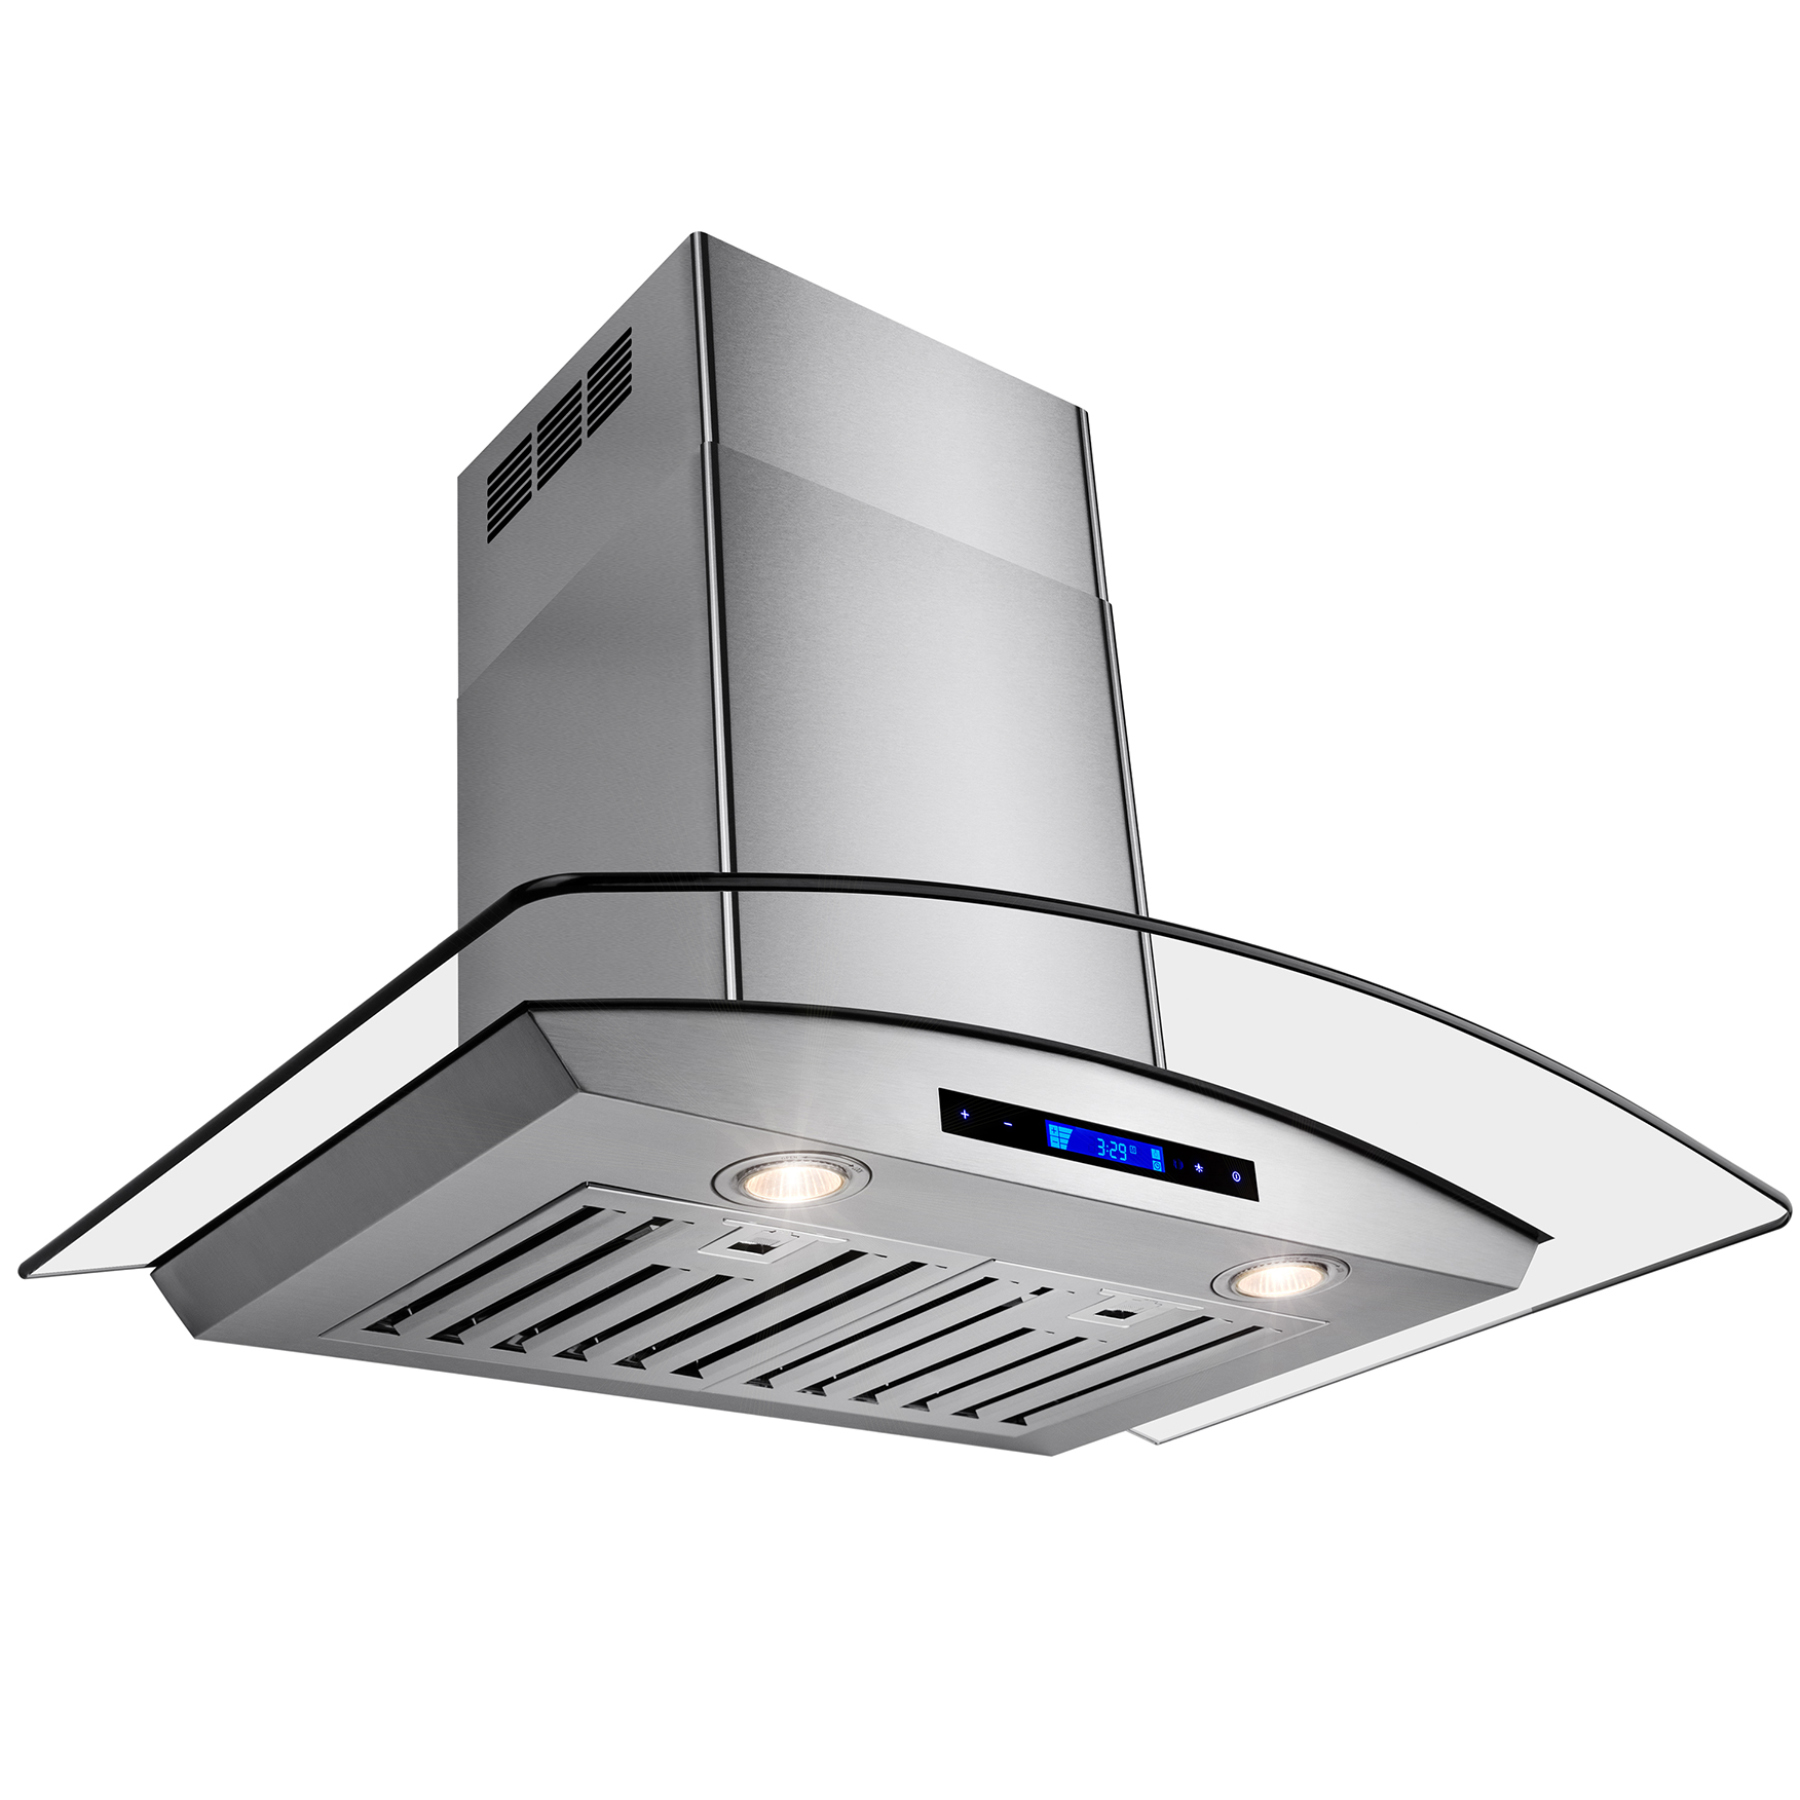 """Image of AKDY 36"""" Europe Exhaust Stainless Steel Glass Wall Range Hood Stove Vent w/ Remote Control"""